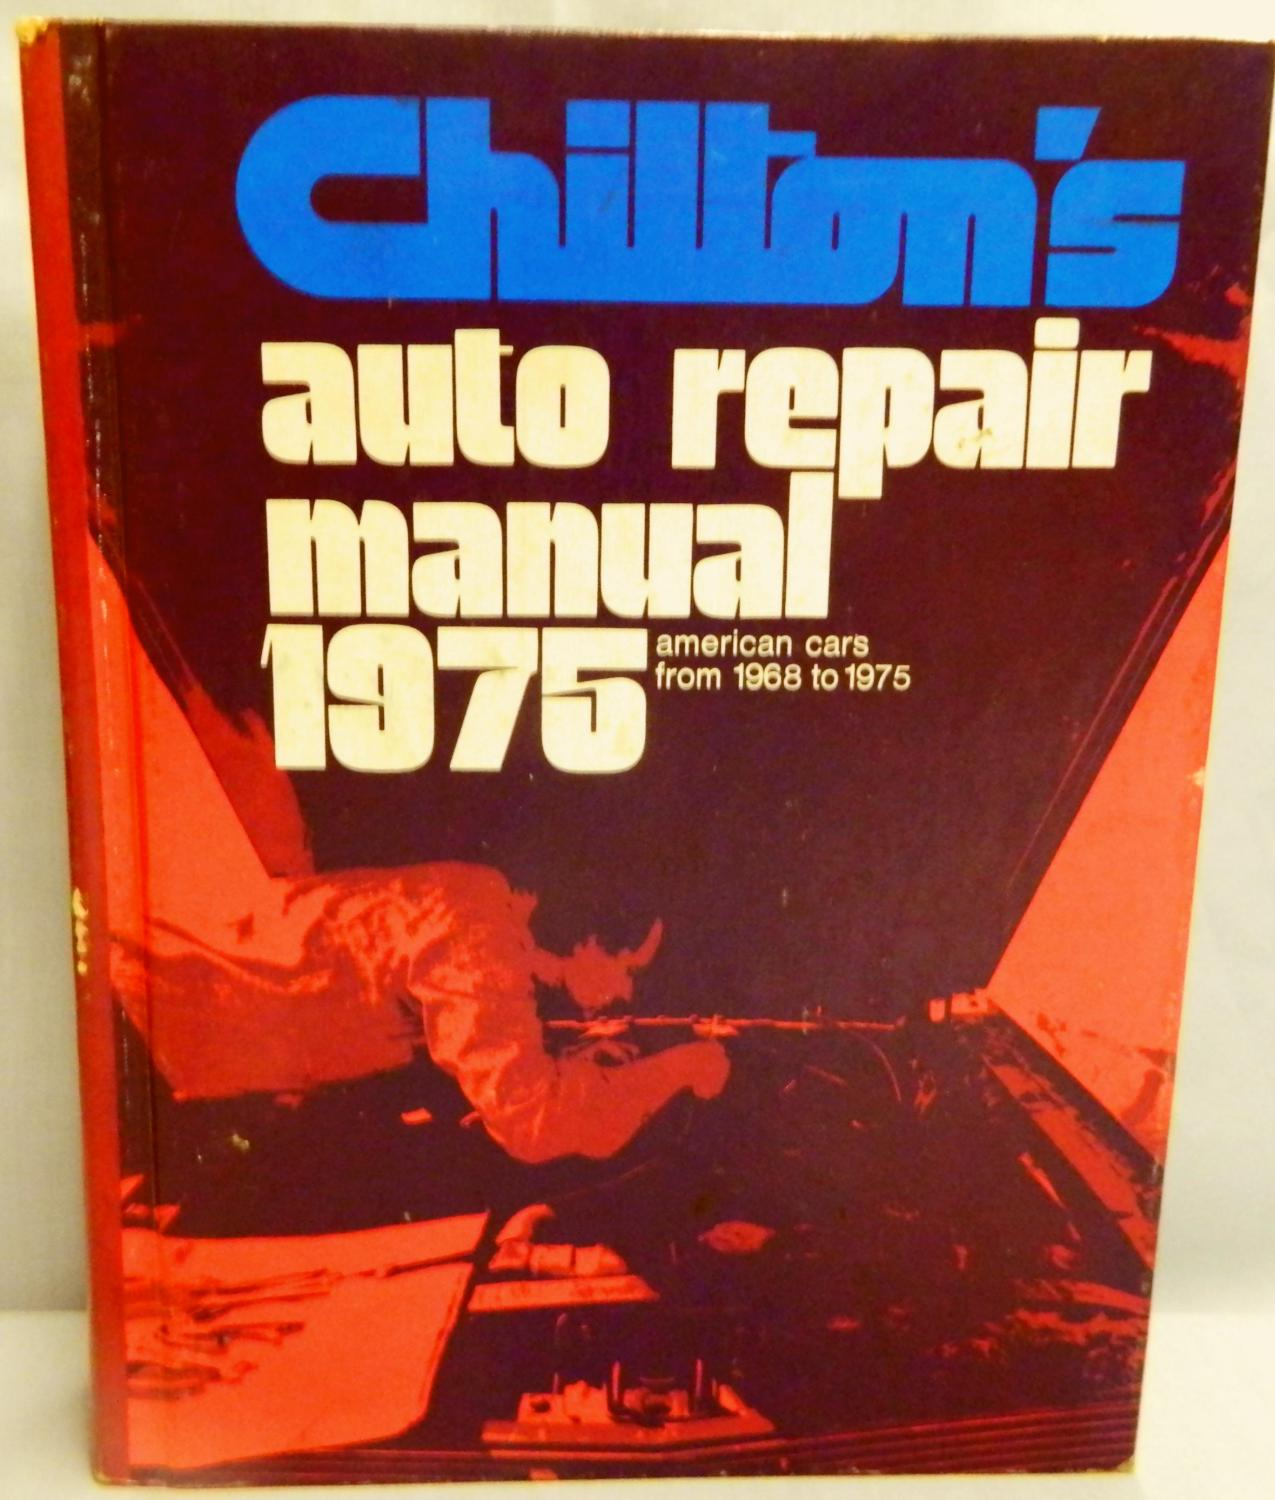 Chilton's Auto Repair Manual 1975 American Cars from 1968 to 1975: Chilton's  Automotive .